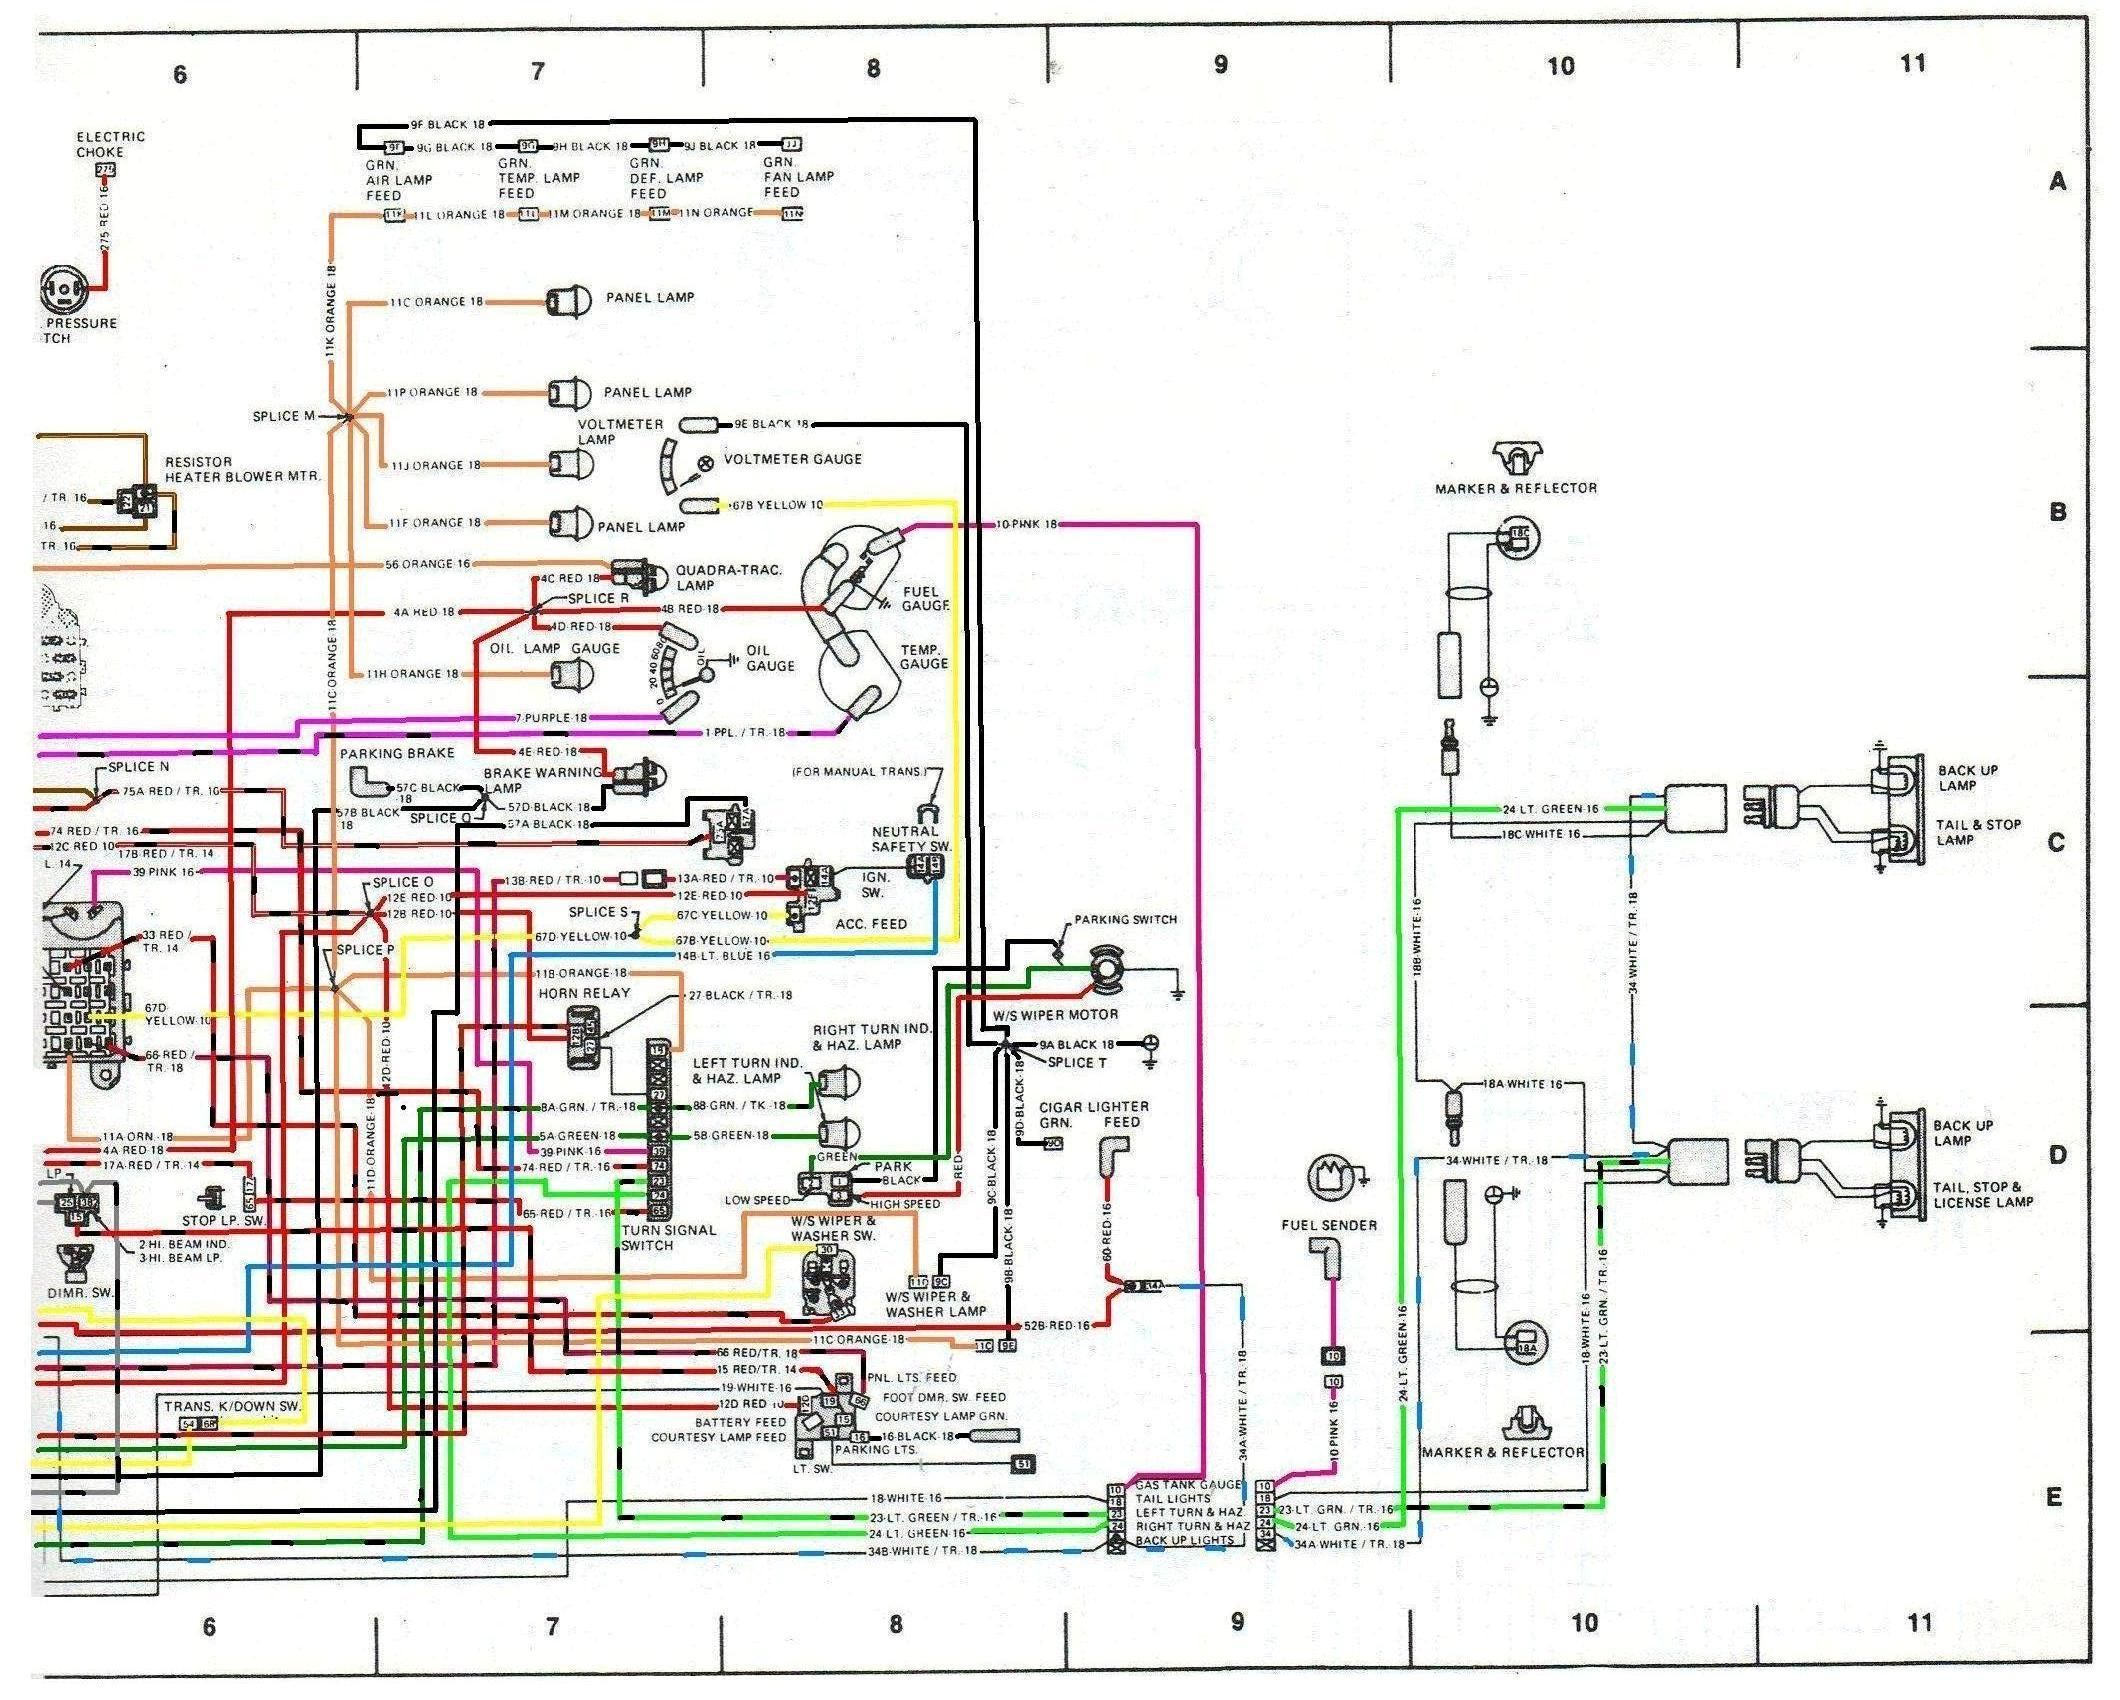 83 Jeep Cj7 Wiring Diagram Starting Know About Wiring Diagram \u2022 Jeep  Hurricane Wiring Diagram 81 Jeep Cj Wiring Diagram